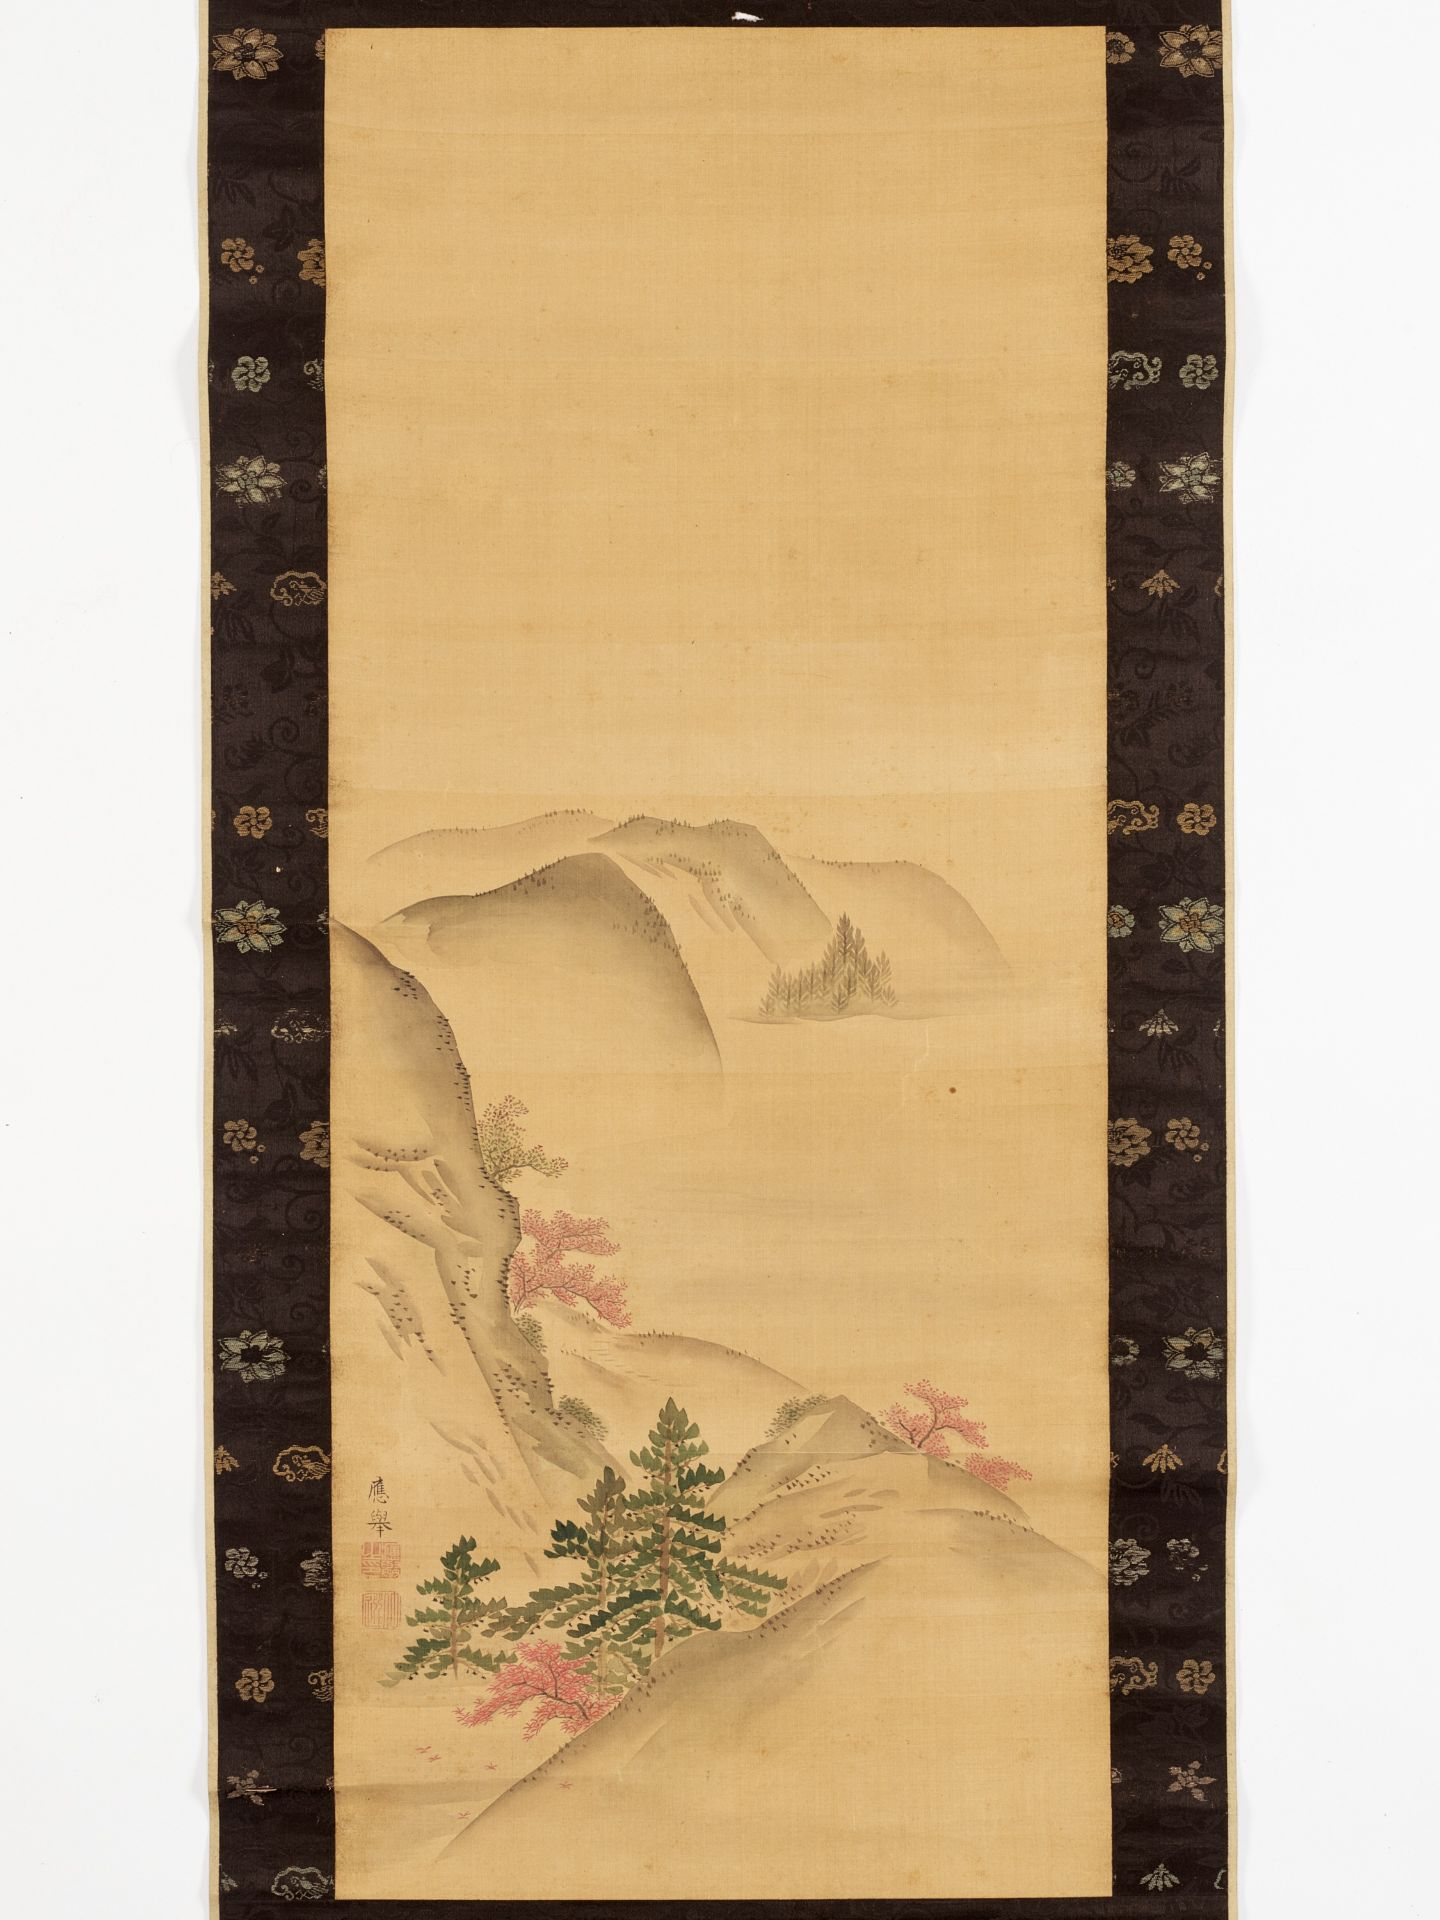 MARUYAMA OKYO: A SCROLL PAINTING OF A HILLY LANDSCAPE